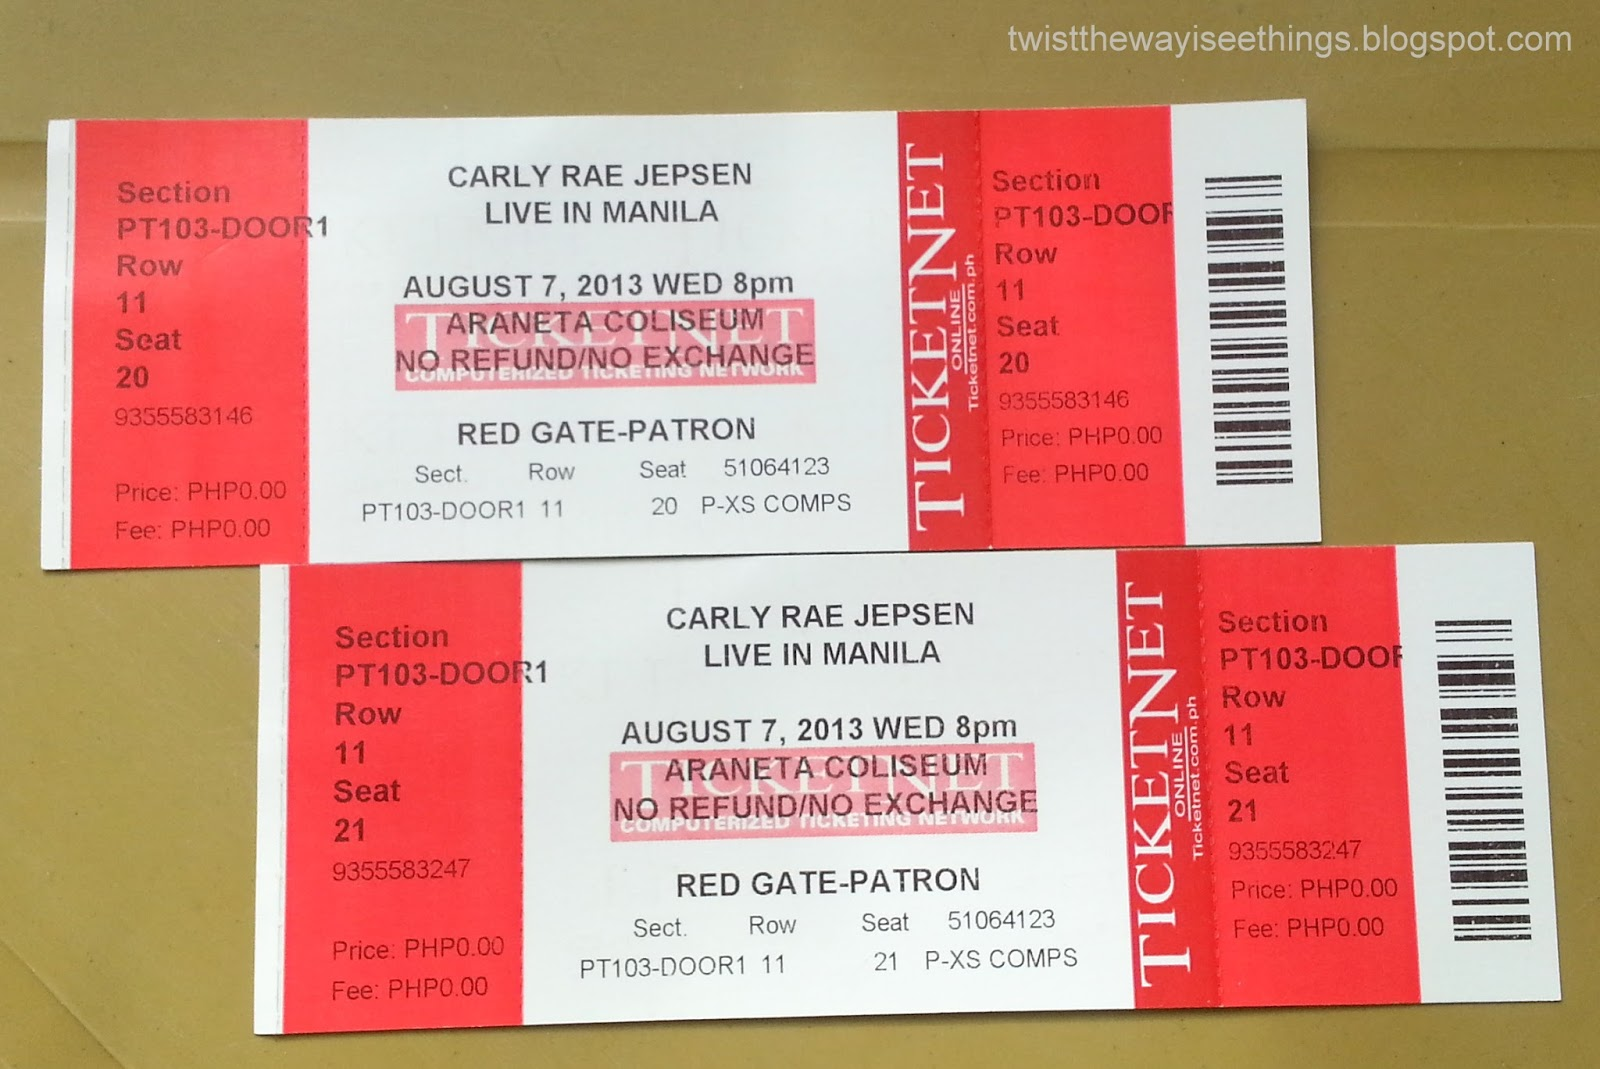 Win Two Tickets To See Carly Rae Jepsen In Concert In Manila Twist